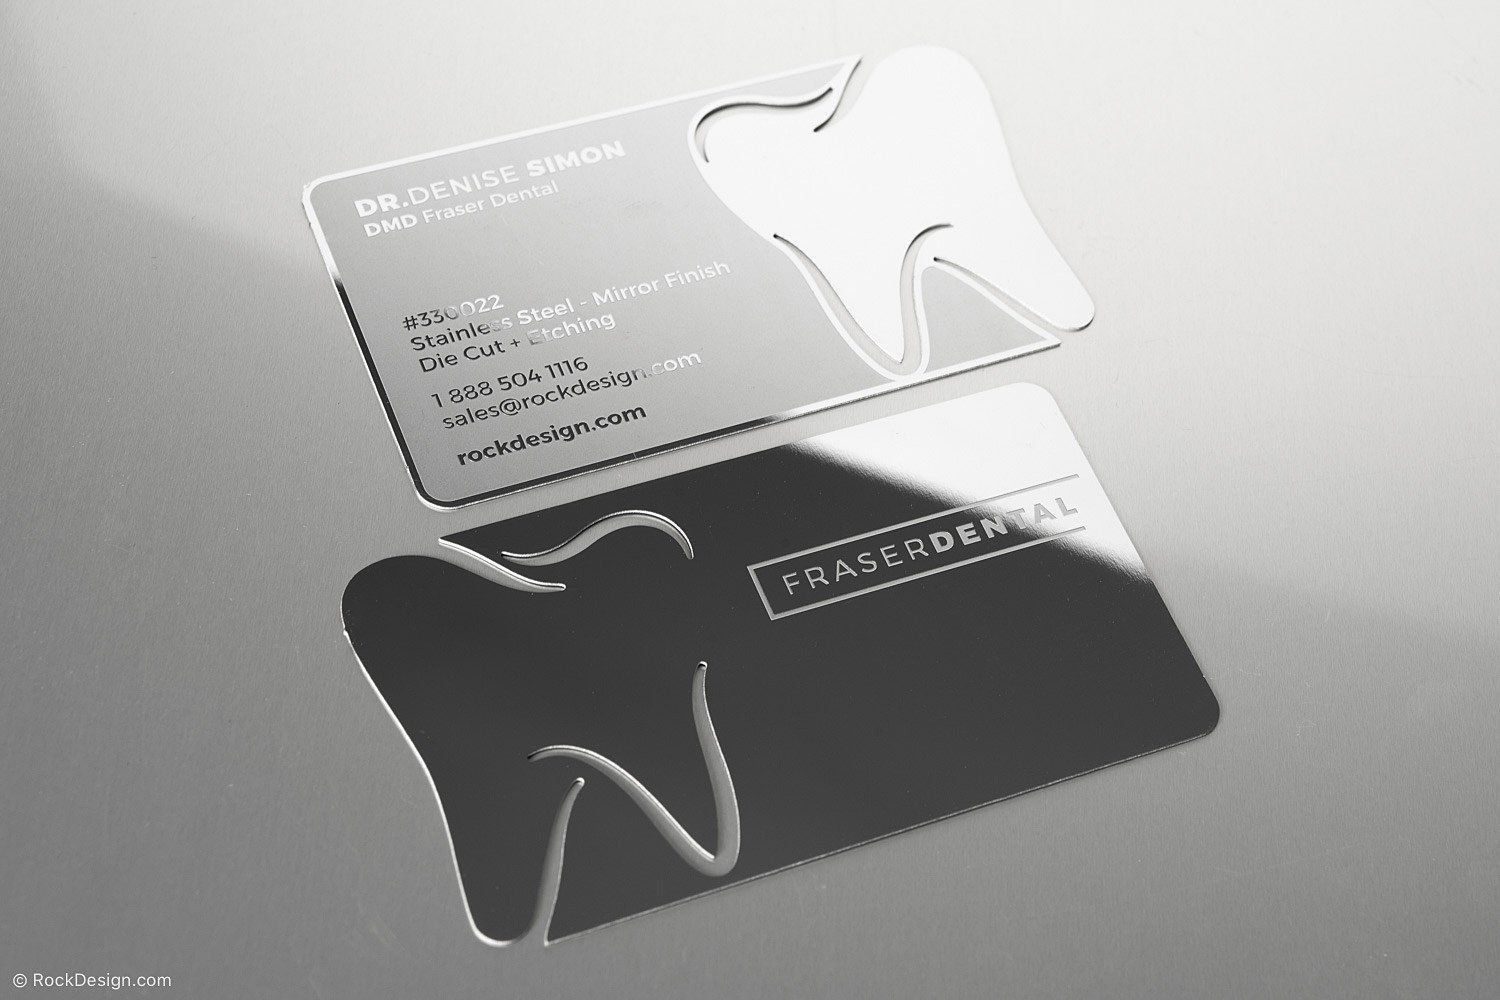 Dental Mirror Finish Stainless Steel Business Card 1 Dental Office Decor Metal Business Cards Dental Design